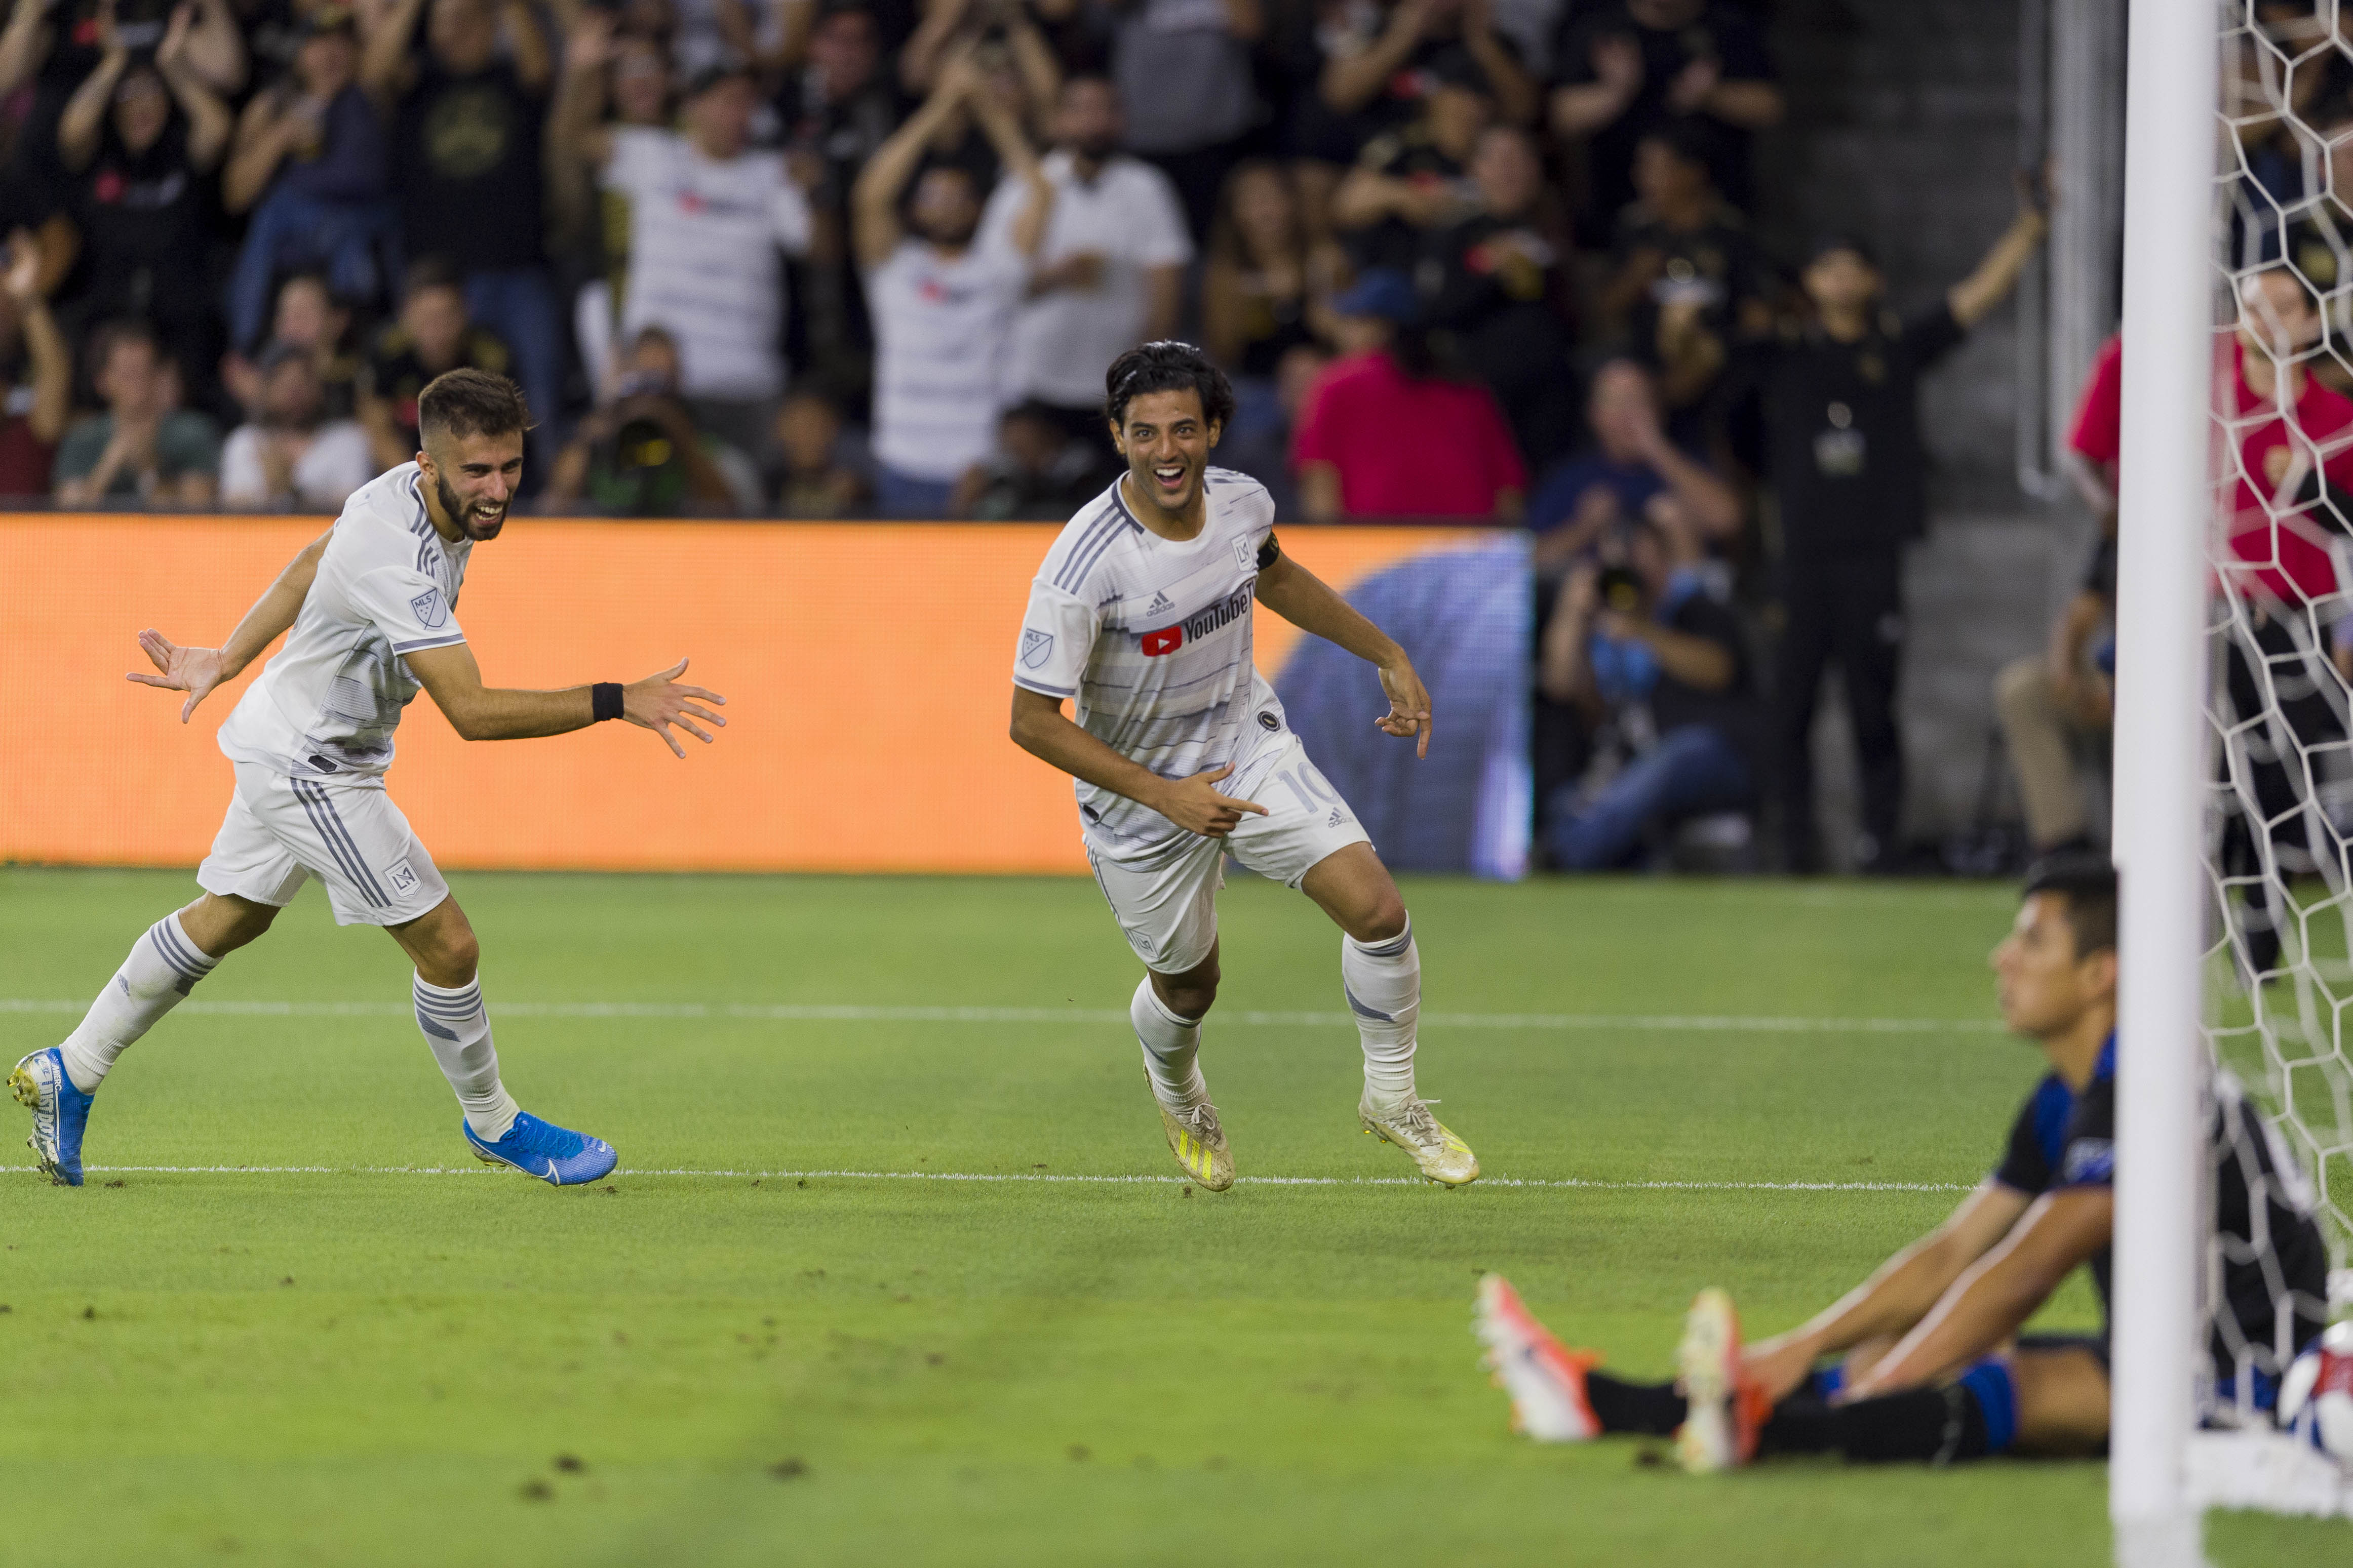 Carlos Vela celebrating after scoring a spectacular goal against the Earthquakes.